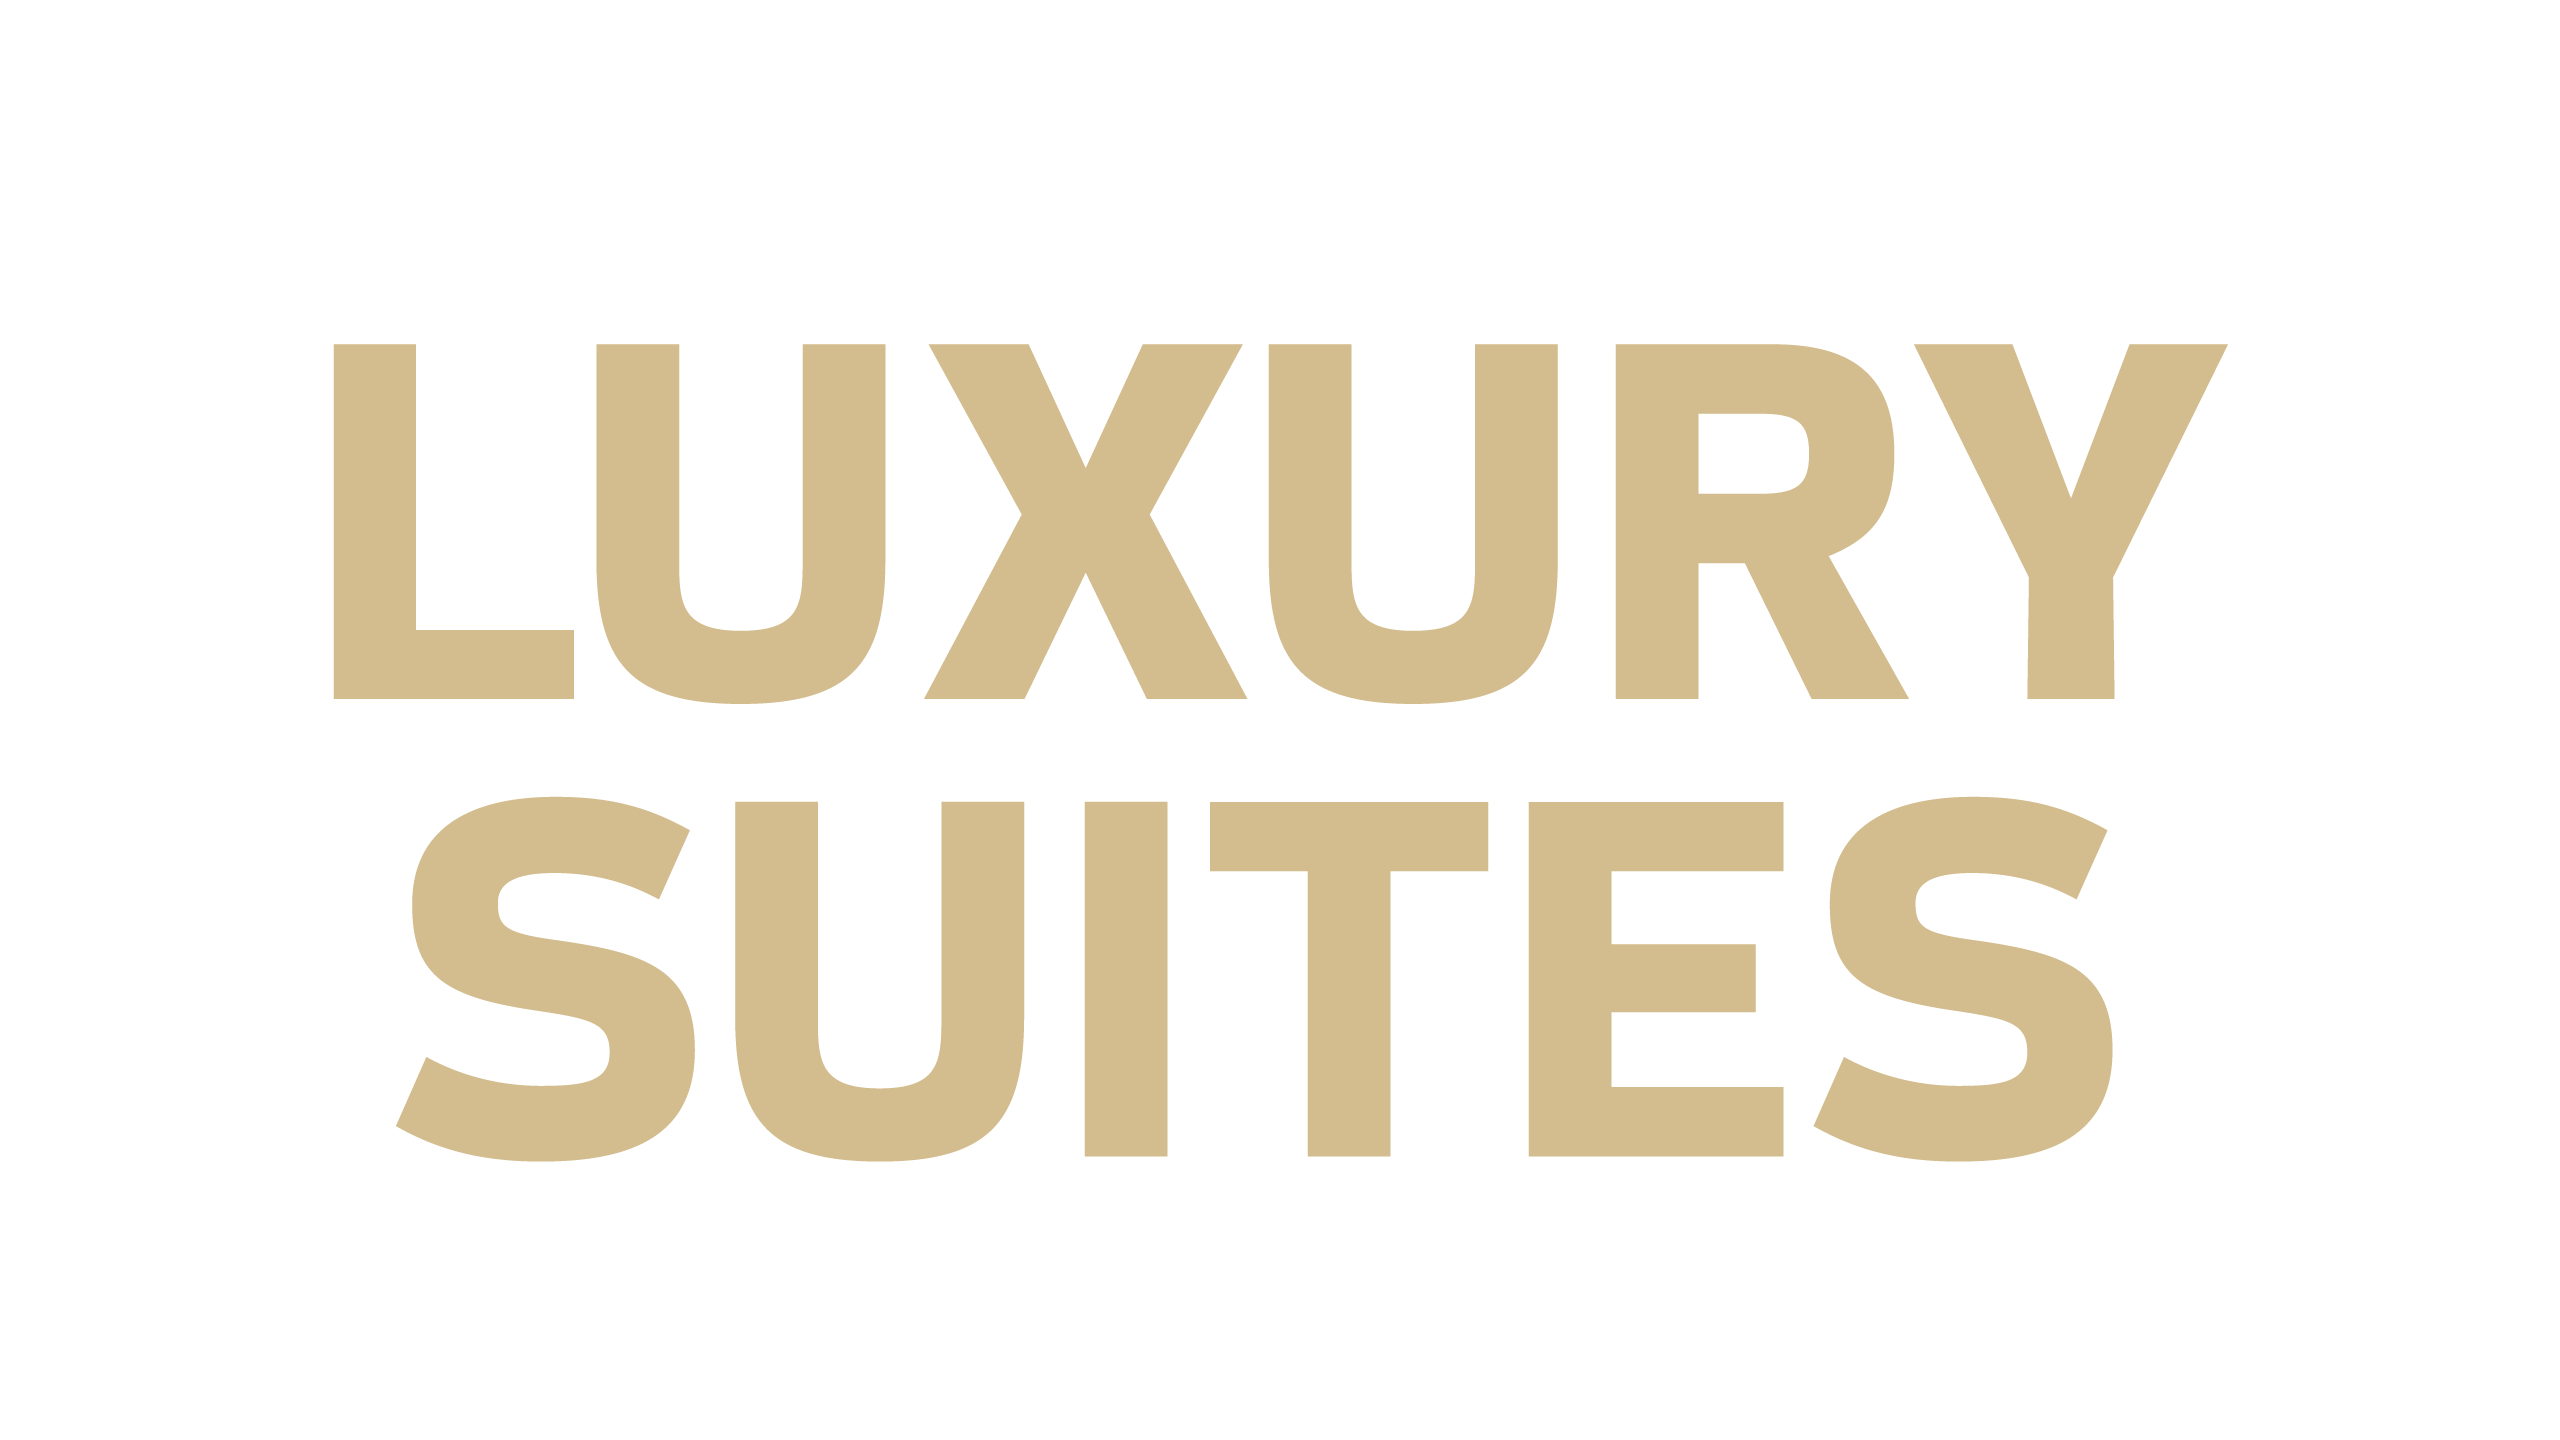 Annual suite holders enjoy the ultimate game day experience